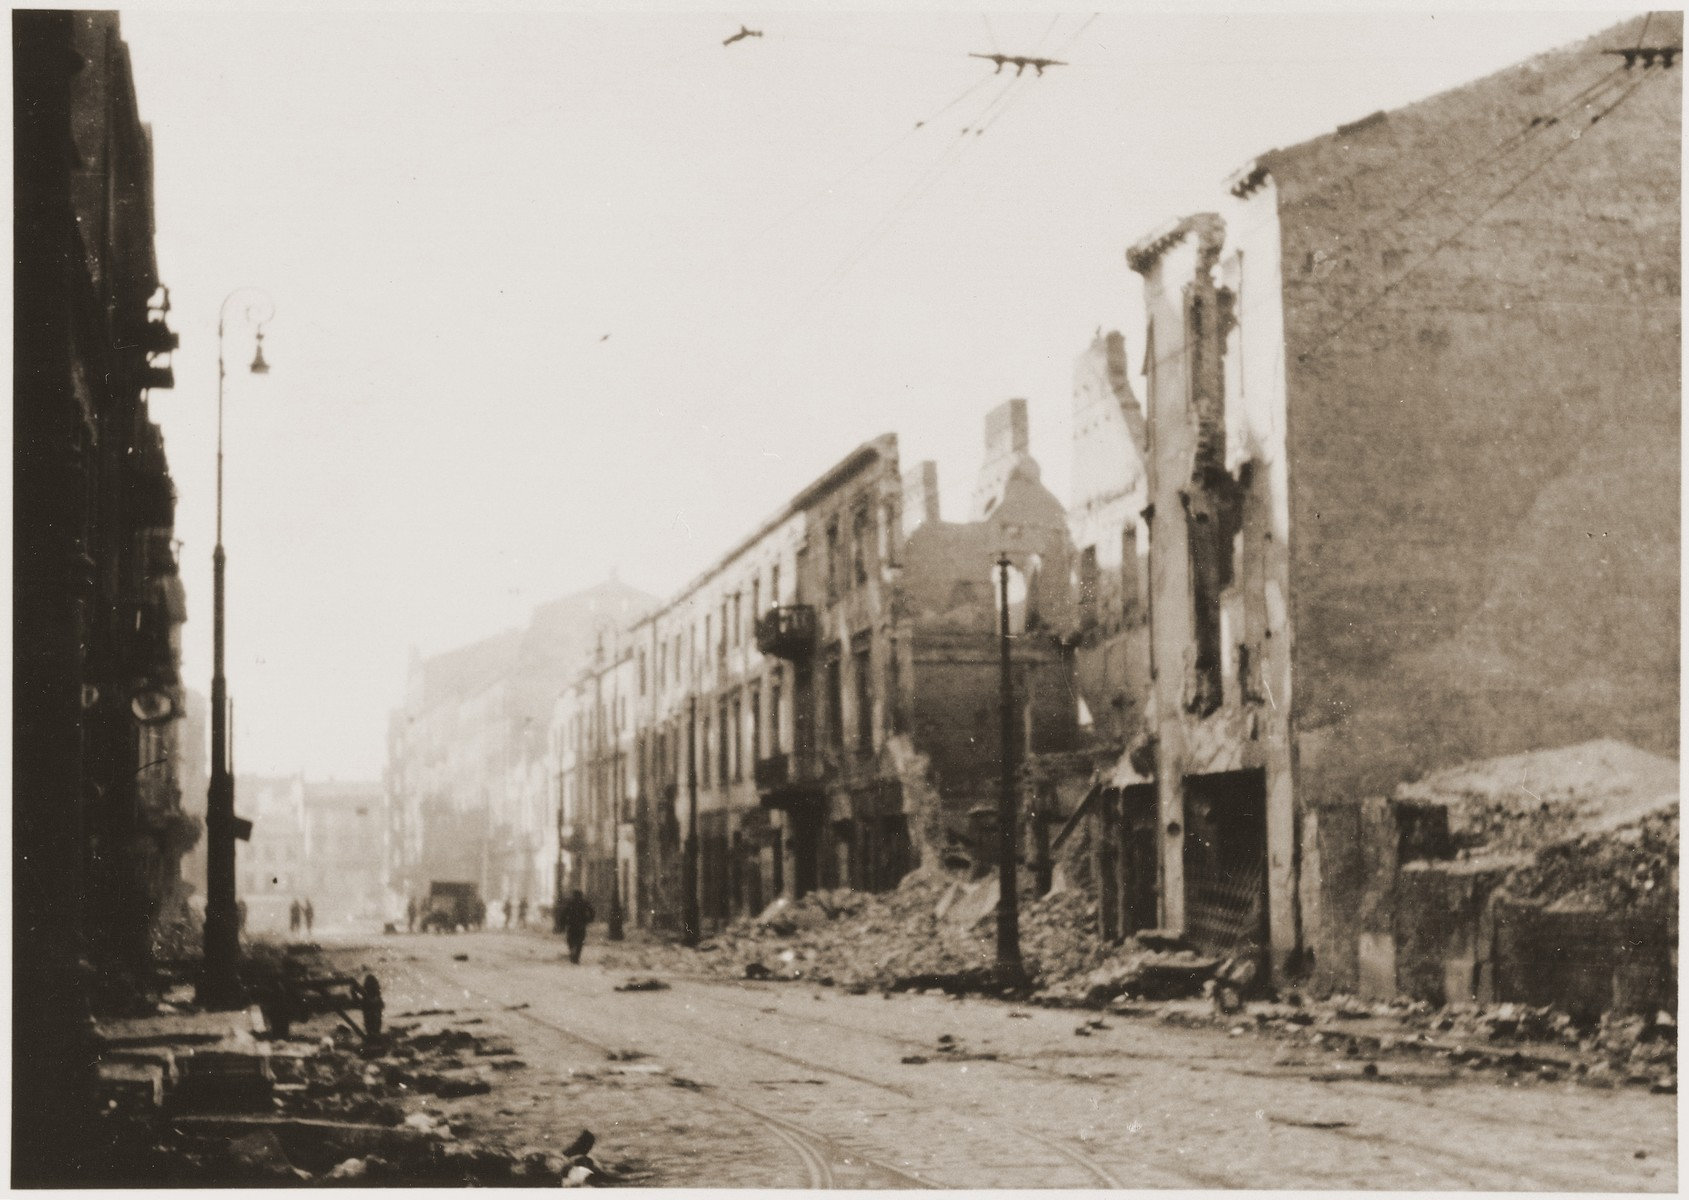 The ruins of buildings destroyed by the SS during the suppression of the Warsaw ghetto uprising.